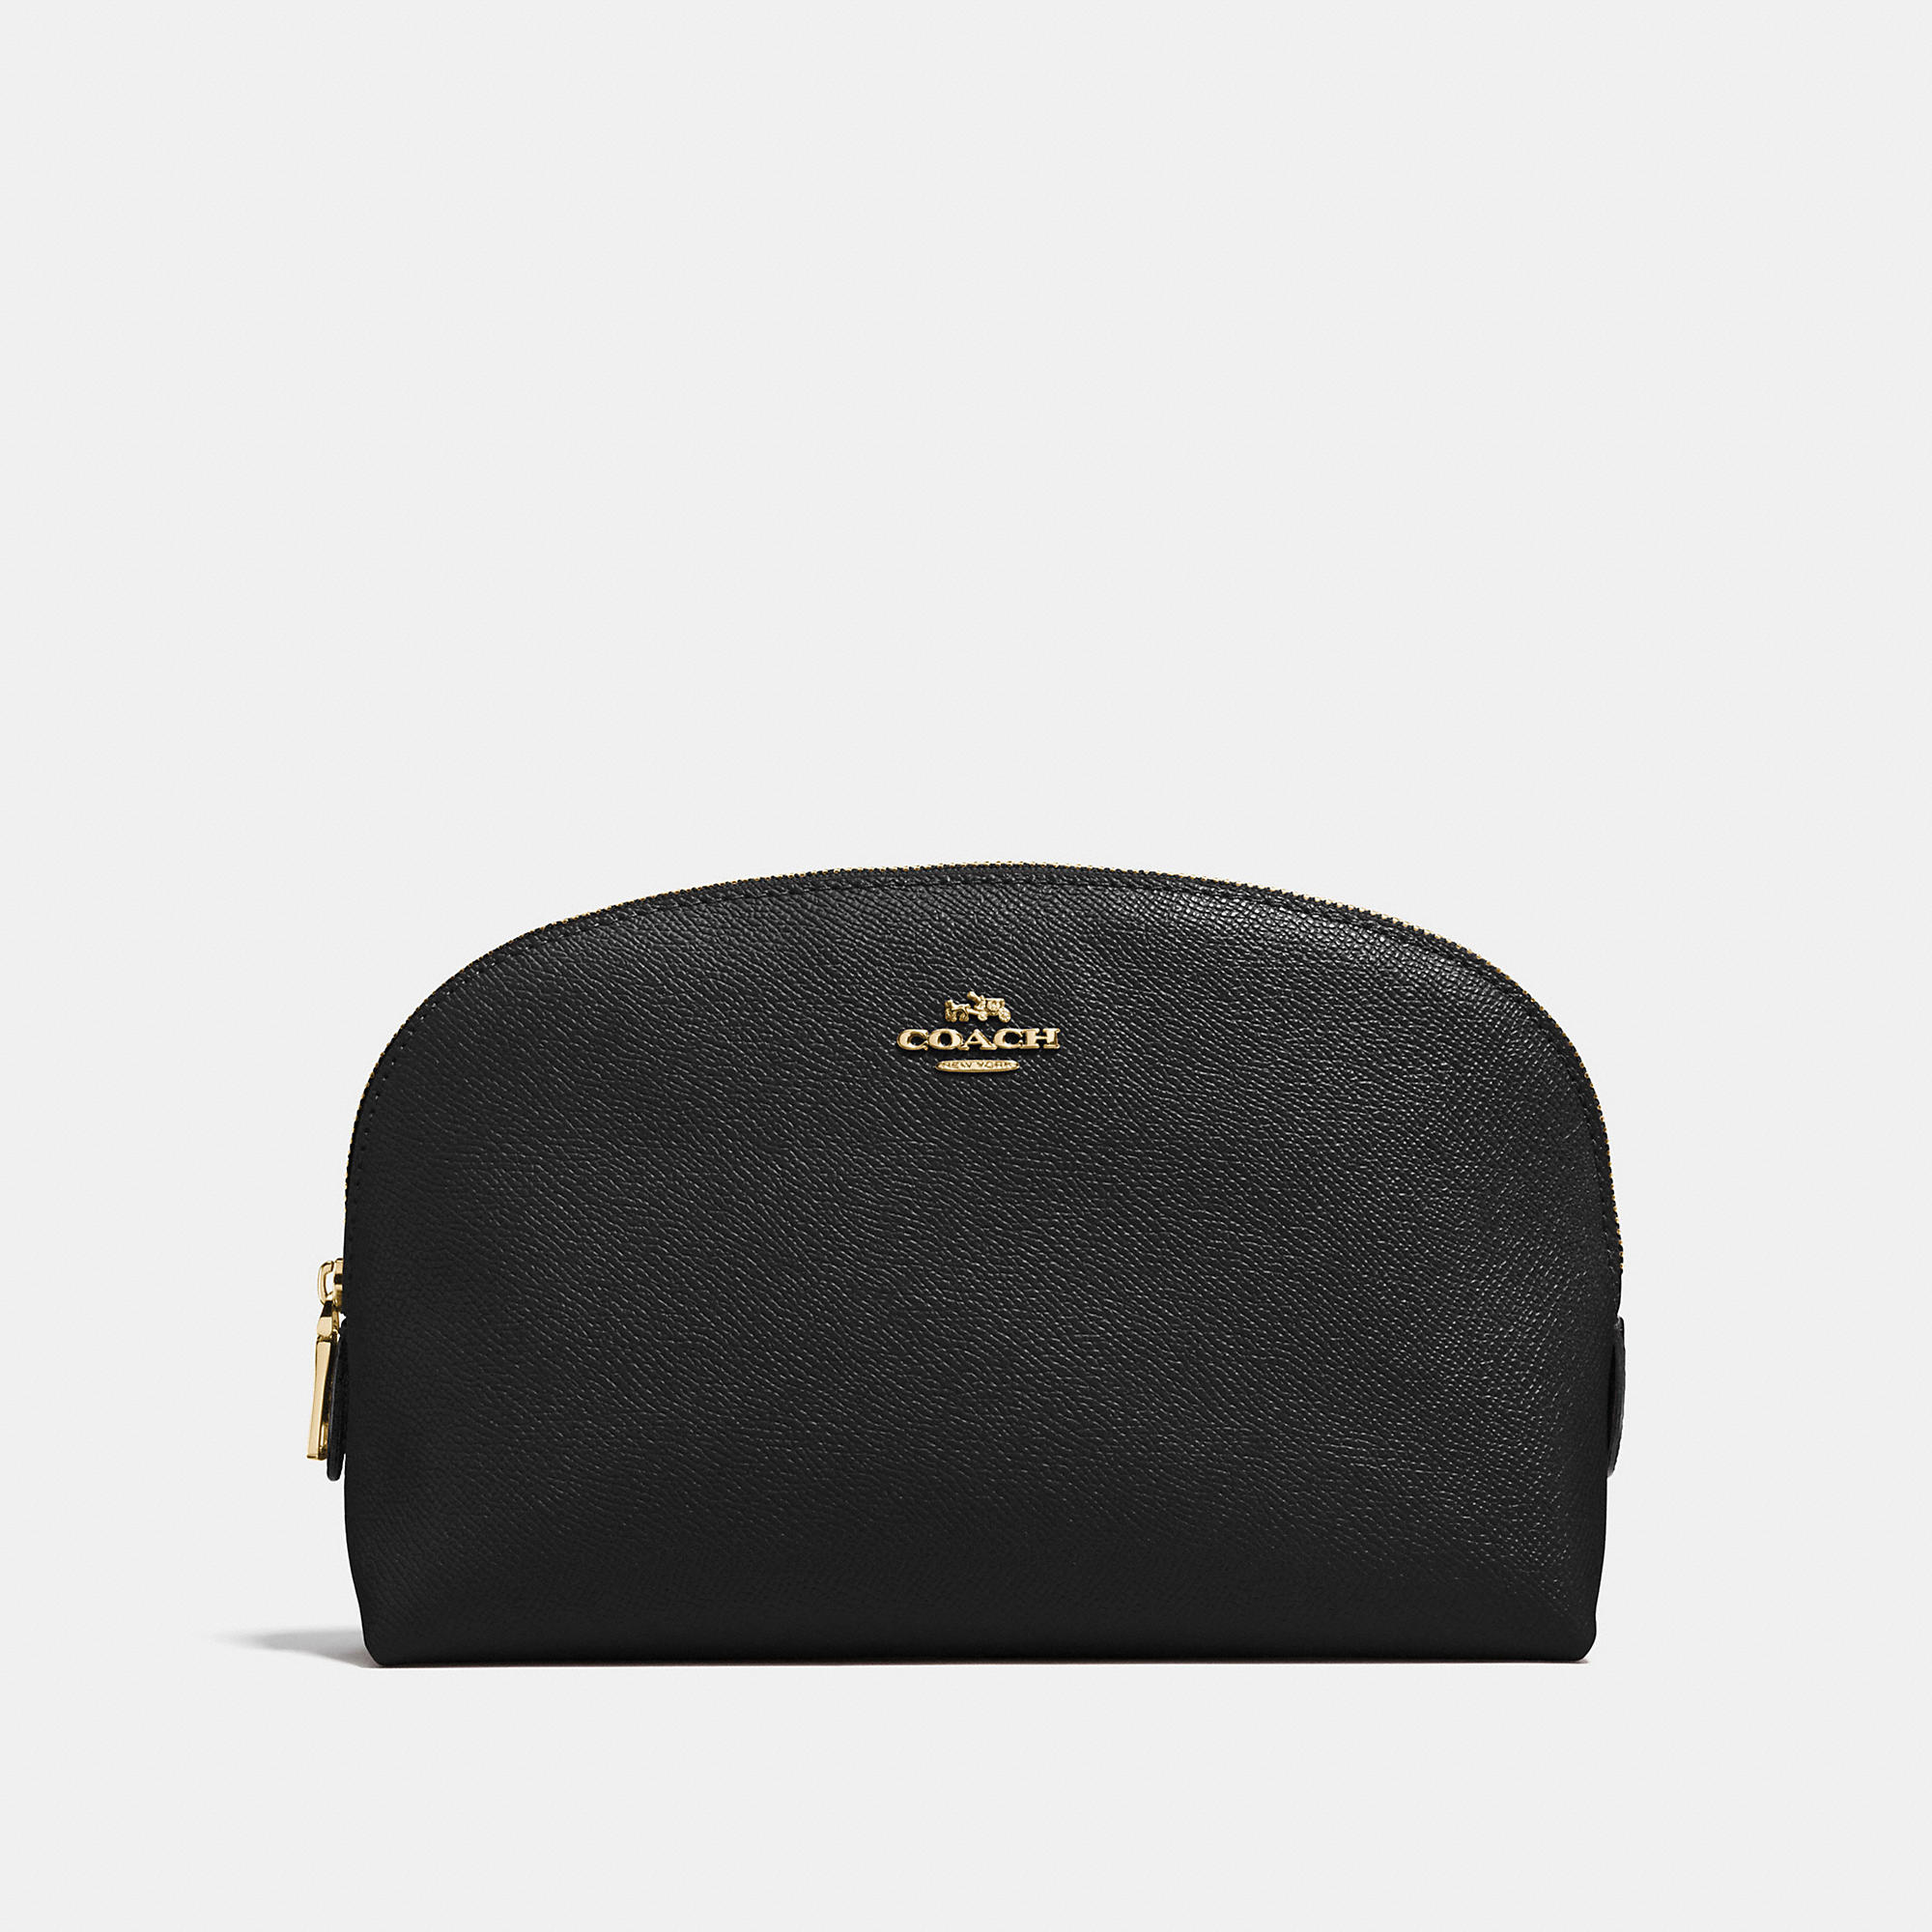 Coach Cosmetic Case 22 In Crossgrain Leather